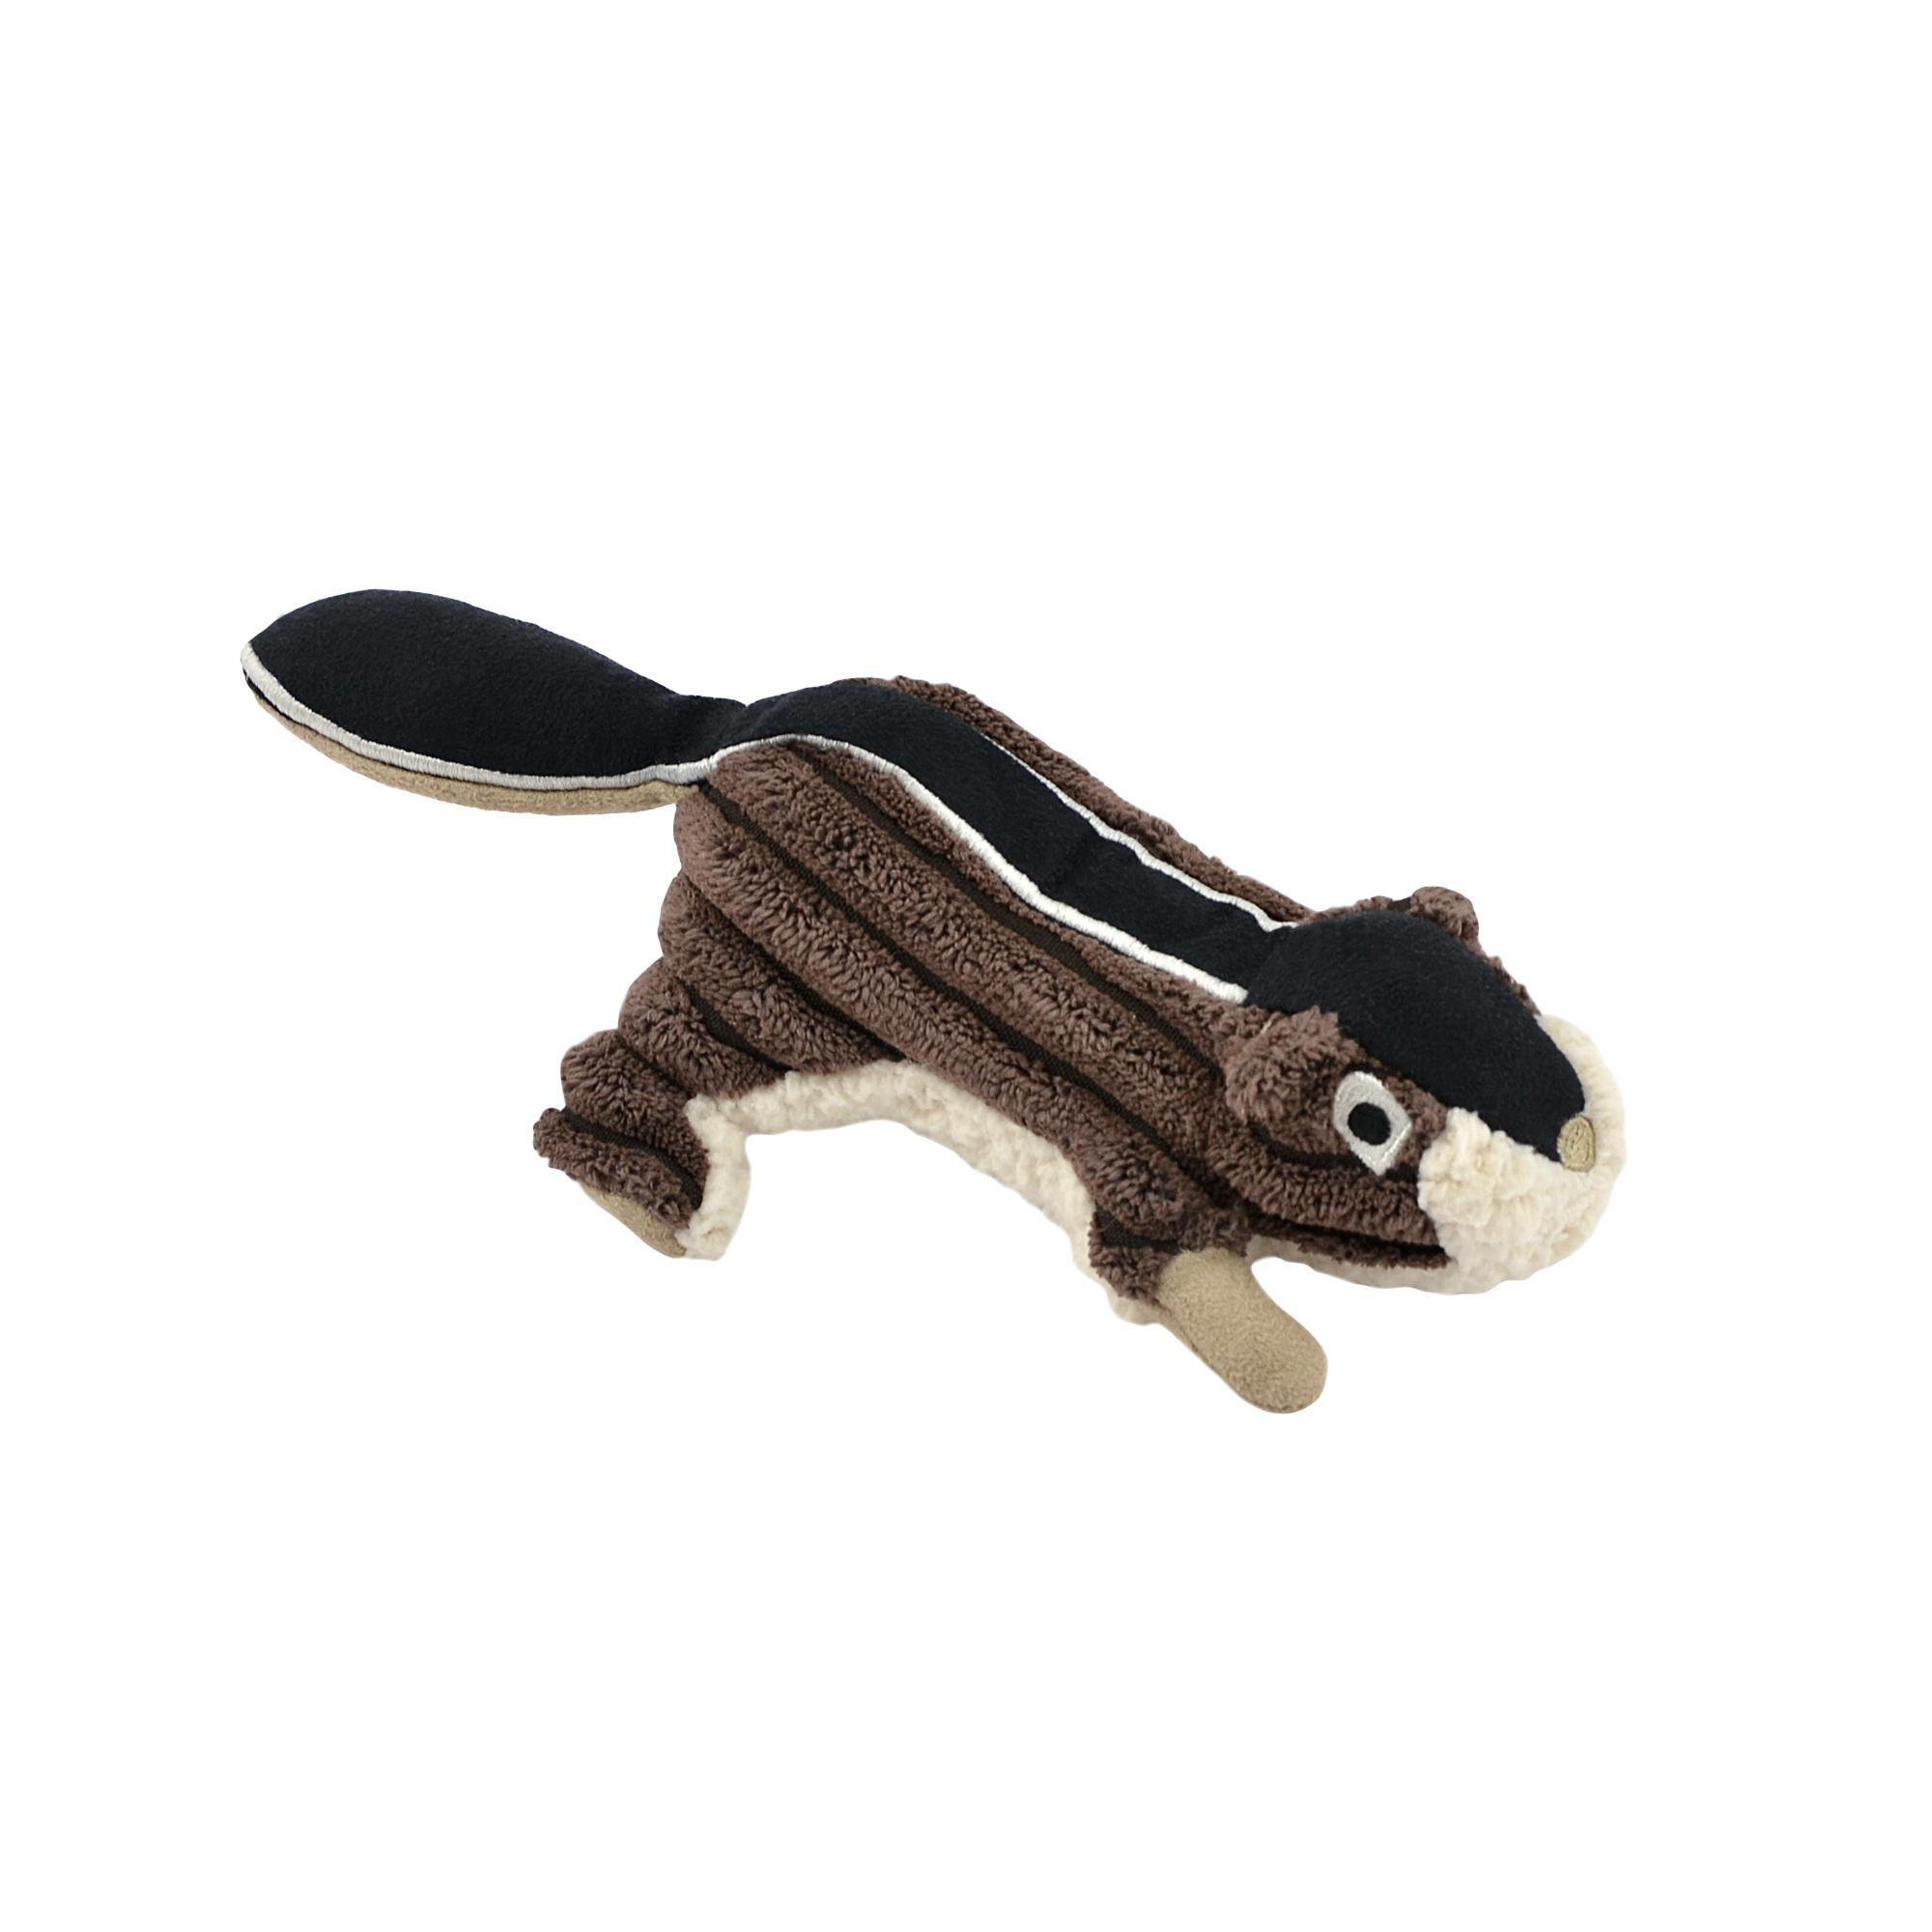 Tall Tails Chipmunk with Squeaker Plush Dog Toy, 5-in (Size: 5-in) Image